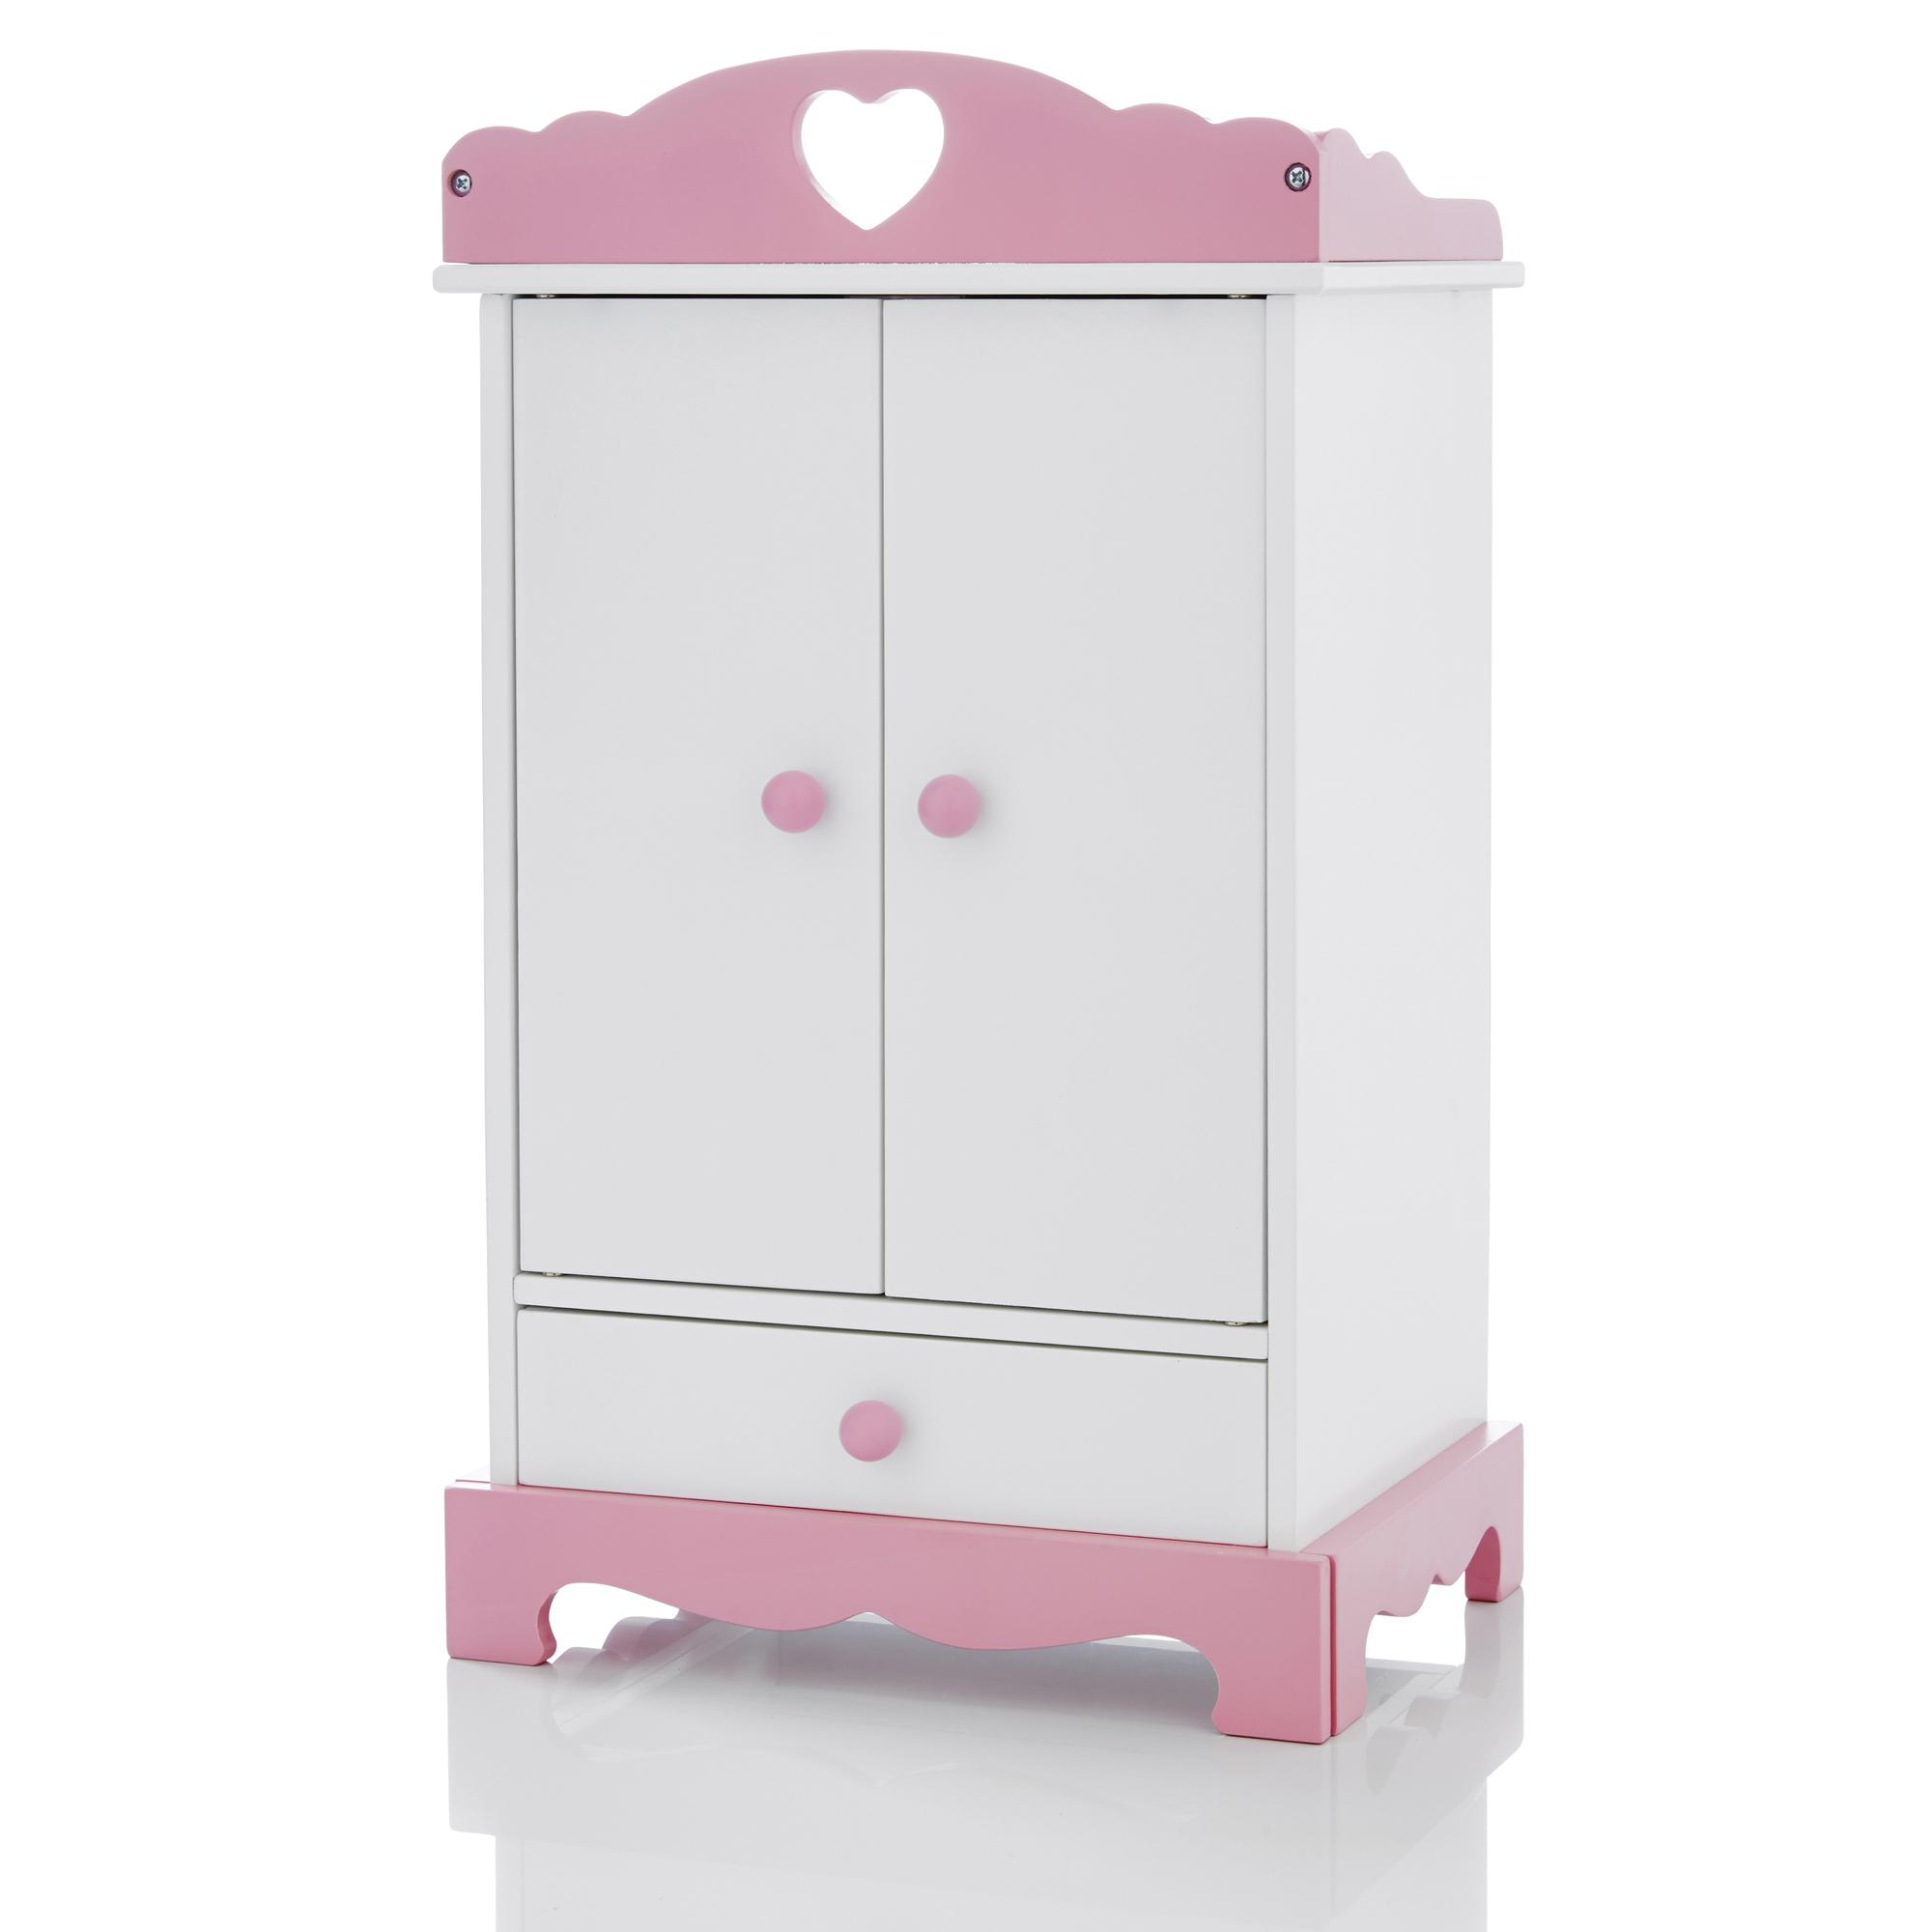 Wooden Wardrobe Closet: Molly Dolly Dolls Wooden Wardrobe Clothes Closet Chest